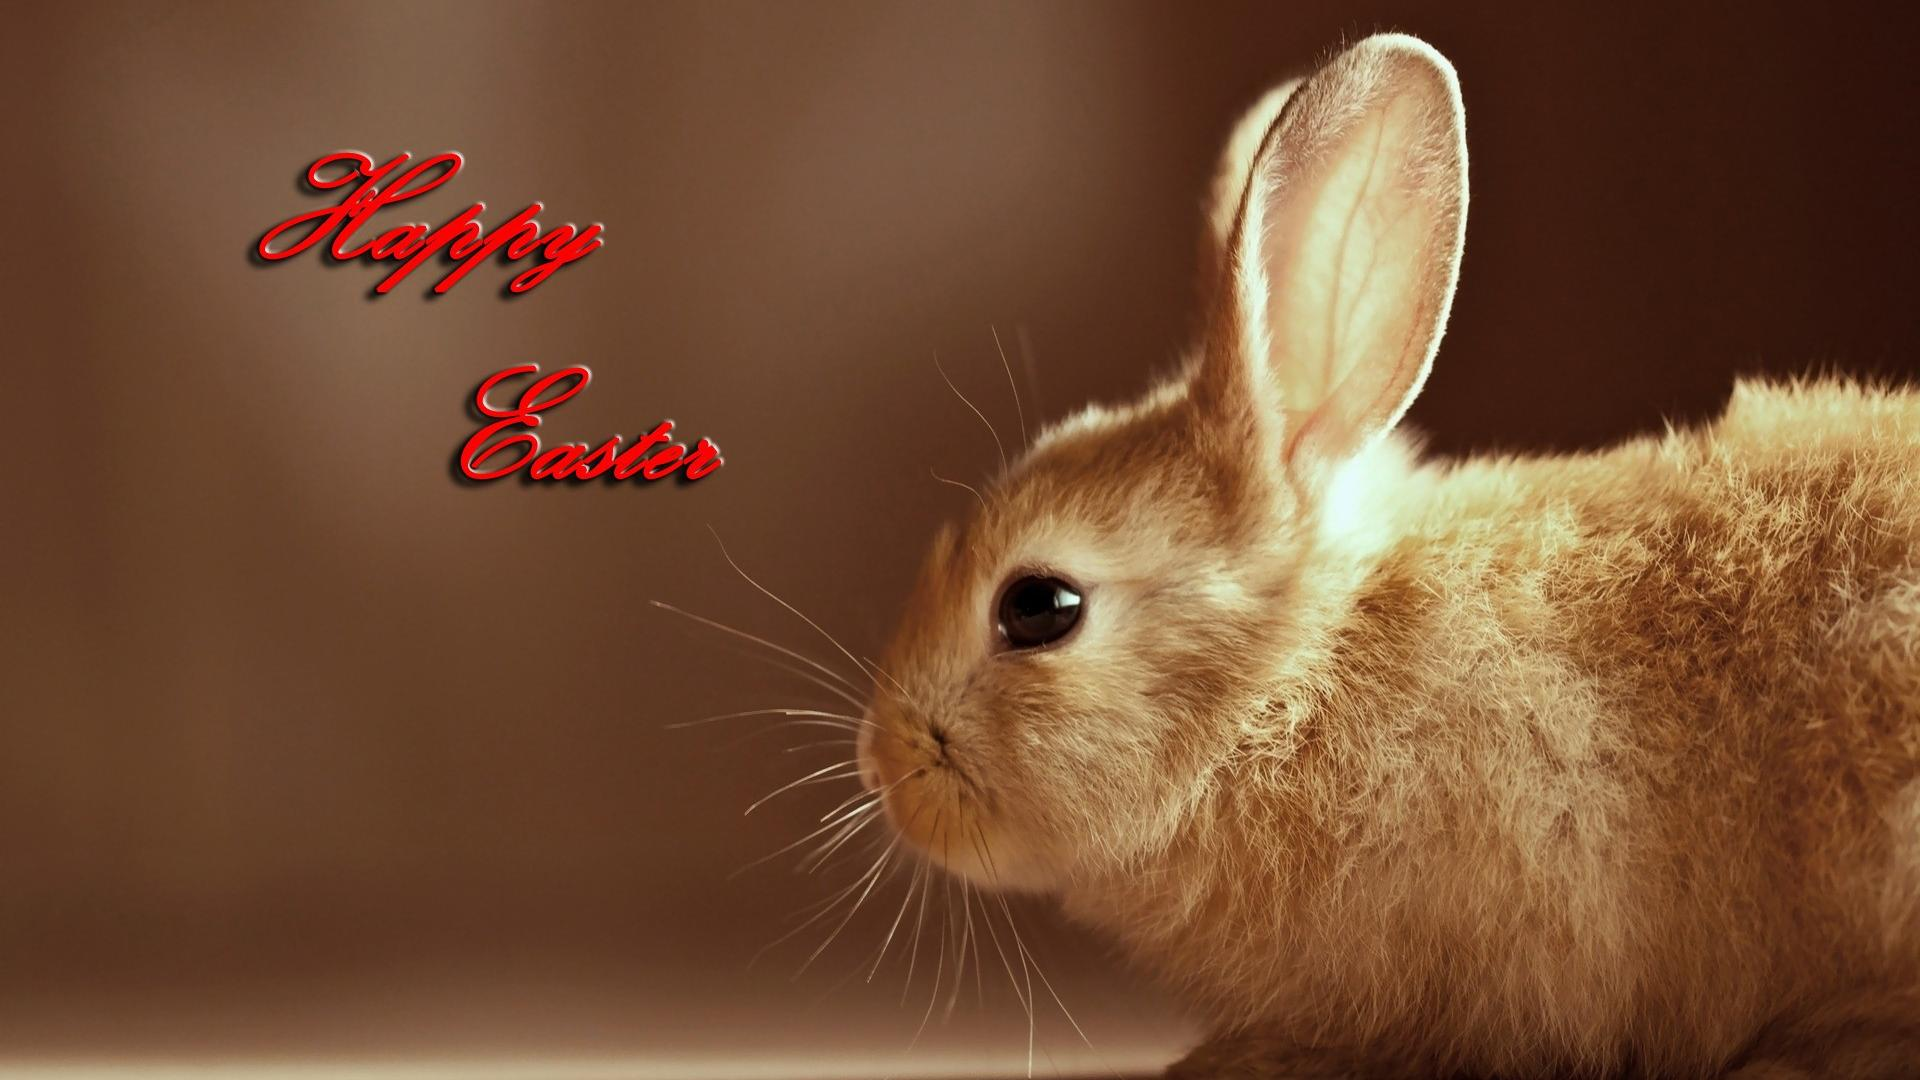 Happy Easter Bunny Pictures HD Wallpaper of Greeting 1920x1080